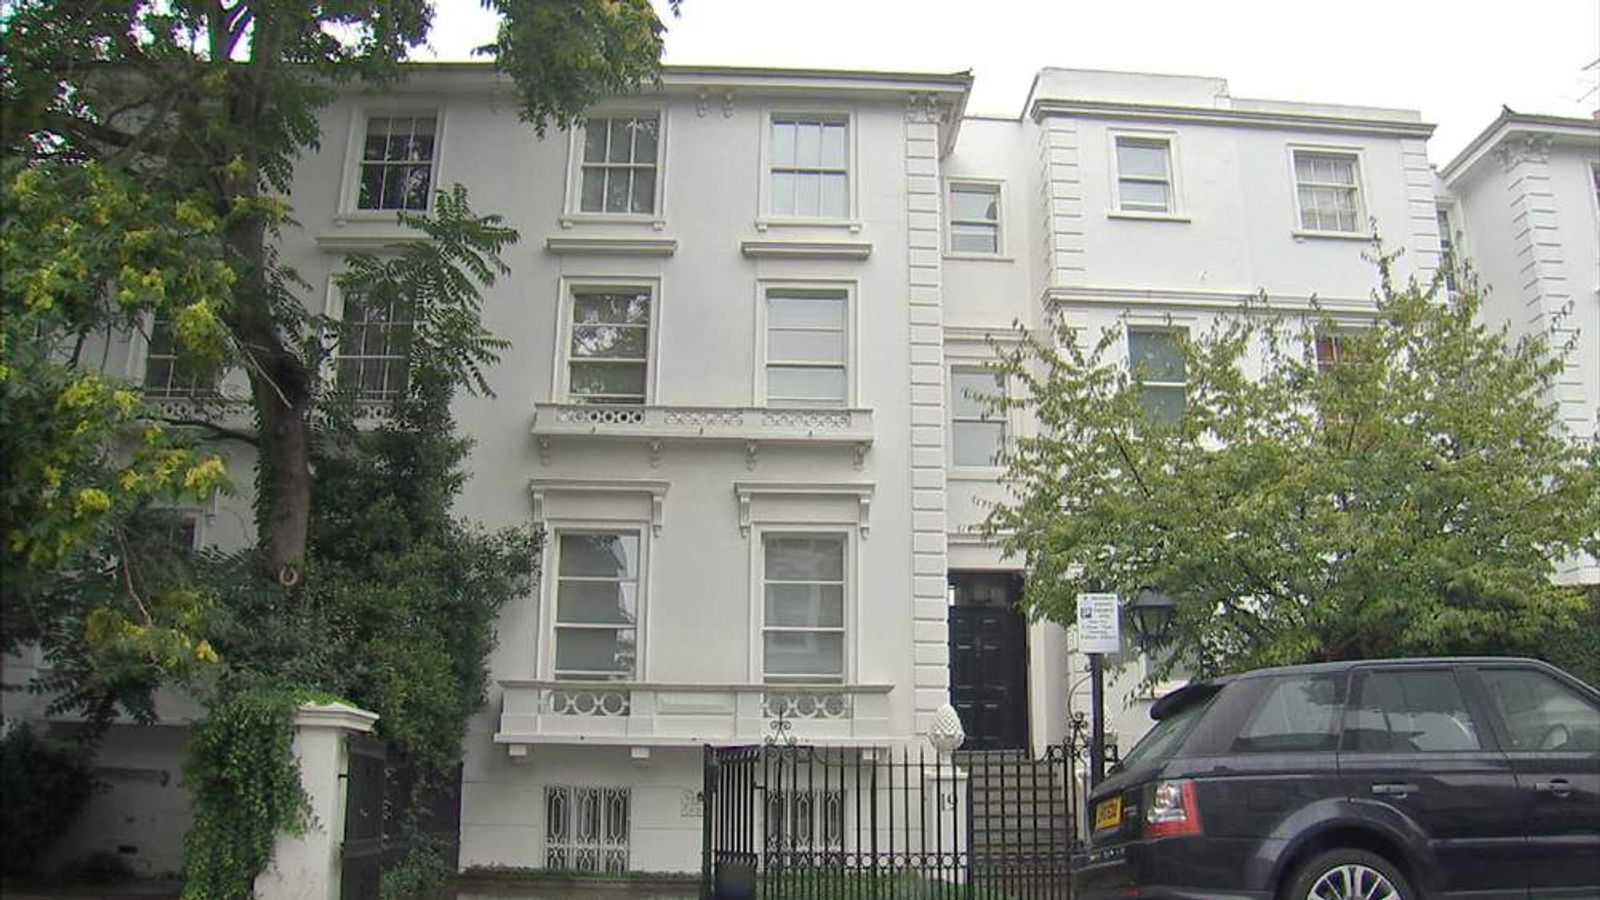 House in Kensington and Chelsea